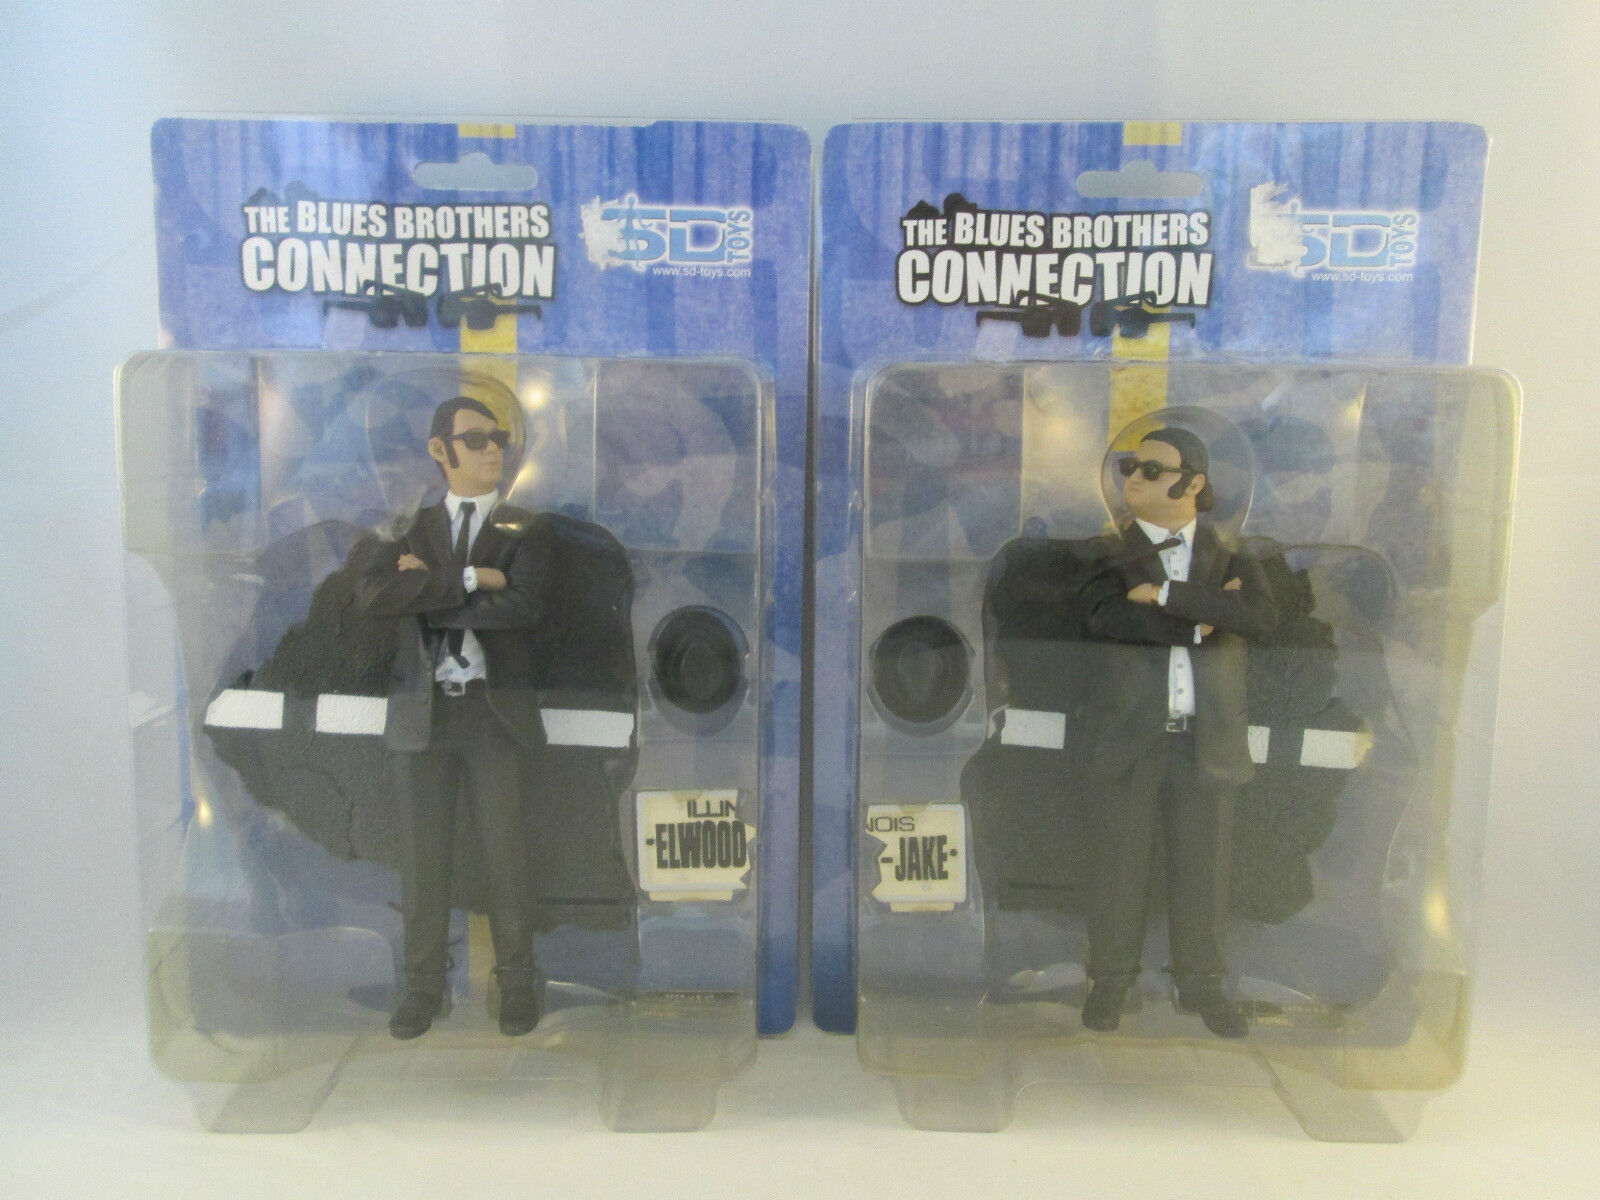 The azuls Brojohers Connection - Jake + Elwood NEW - SD Juguetes Acción Figura Set